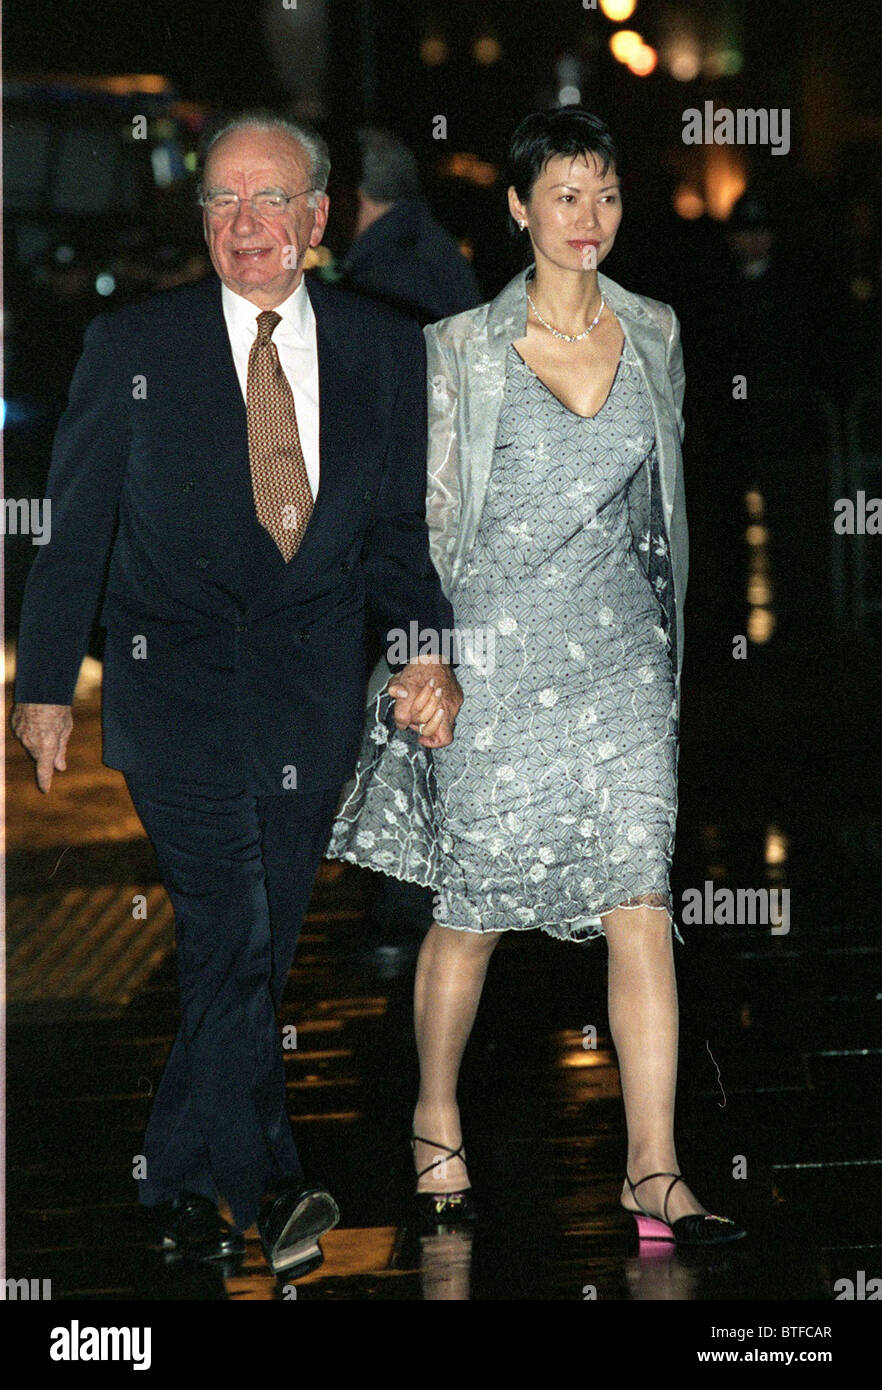 MEDIA MOGUL RUPERT MURDOCH WITH NEW WIFE WENDY DENG AT BANQUET AT CHINESE EMBASSY, LONDON - Stock Image